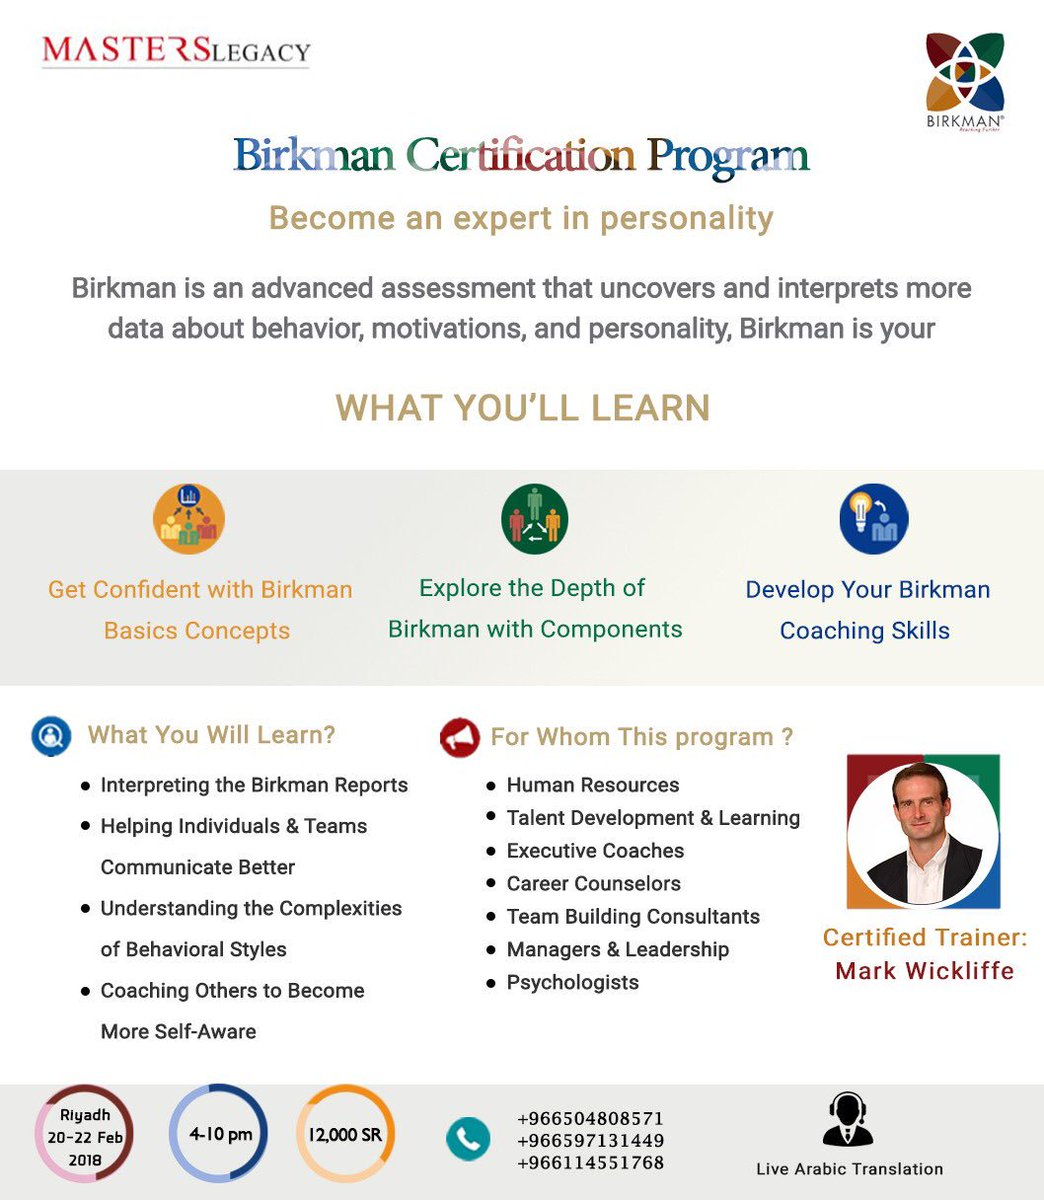 ... coaches business consultants career advisors relationship therapists &  others that use The Birkman Method to change lives & organizations for the  ...